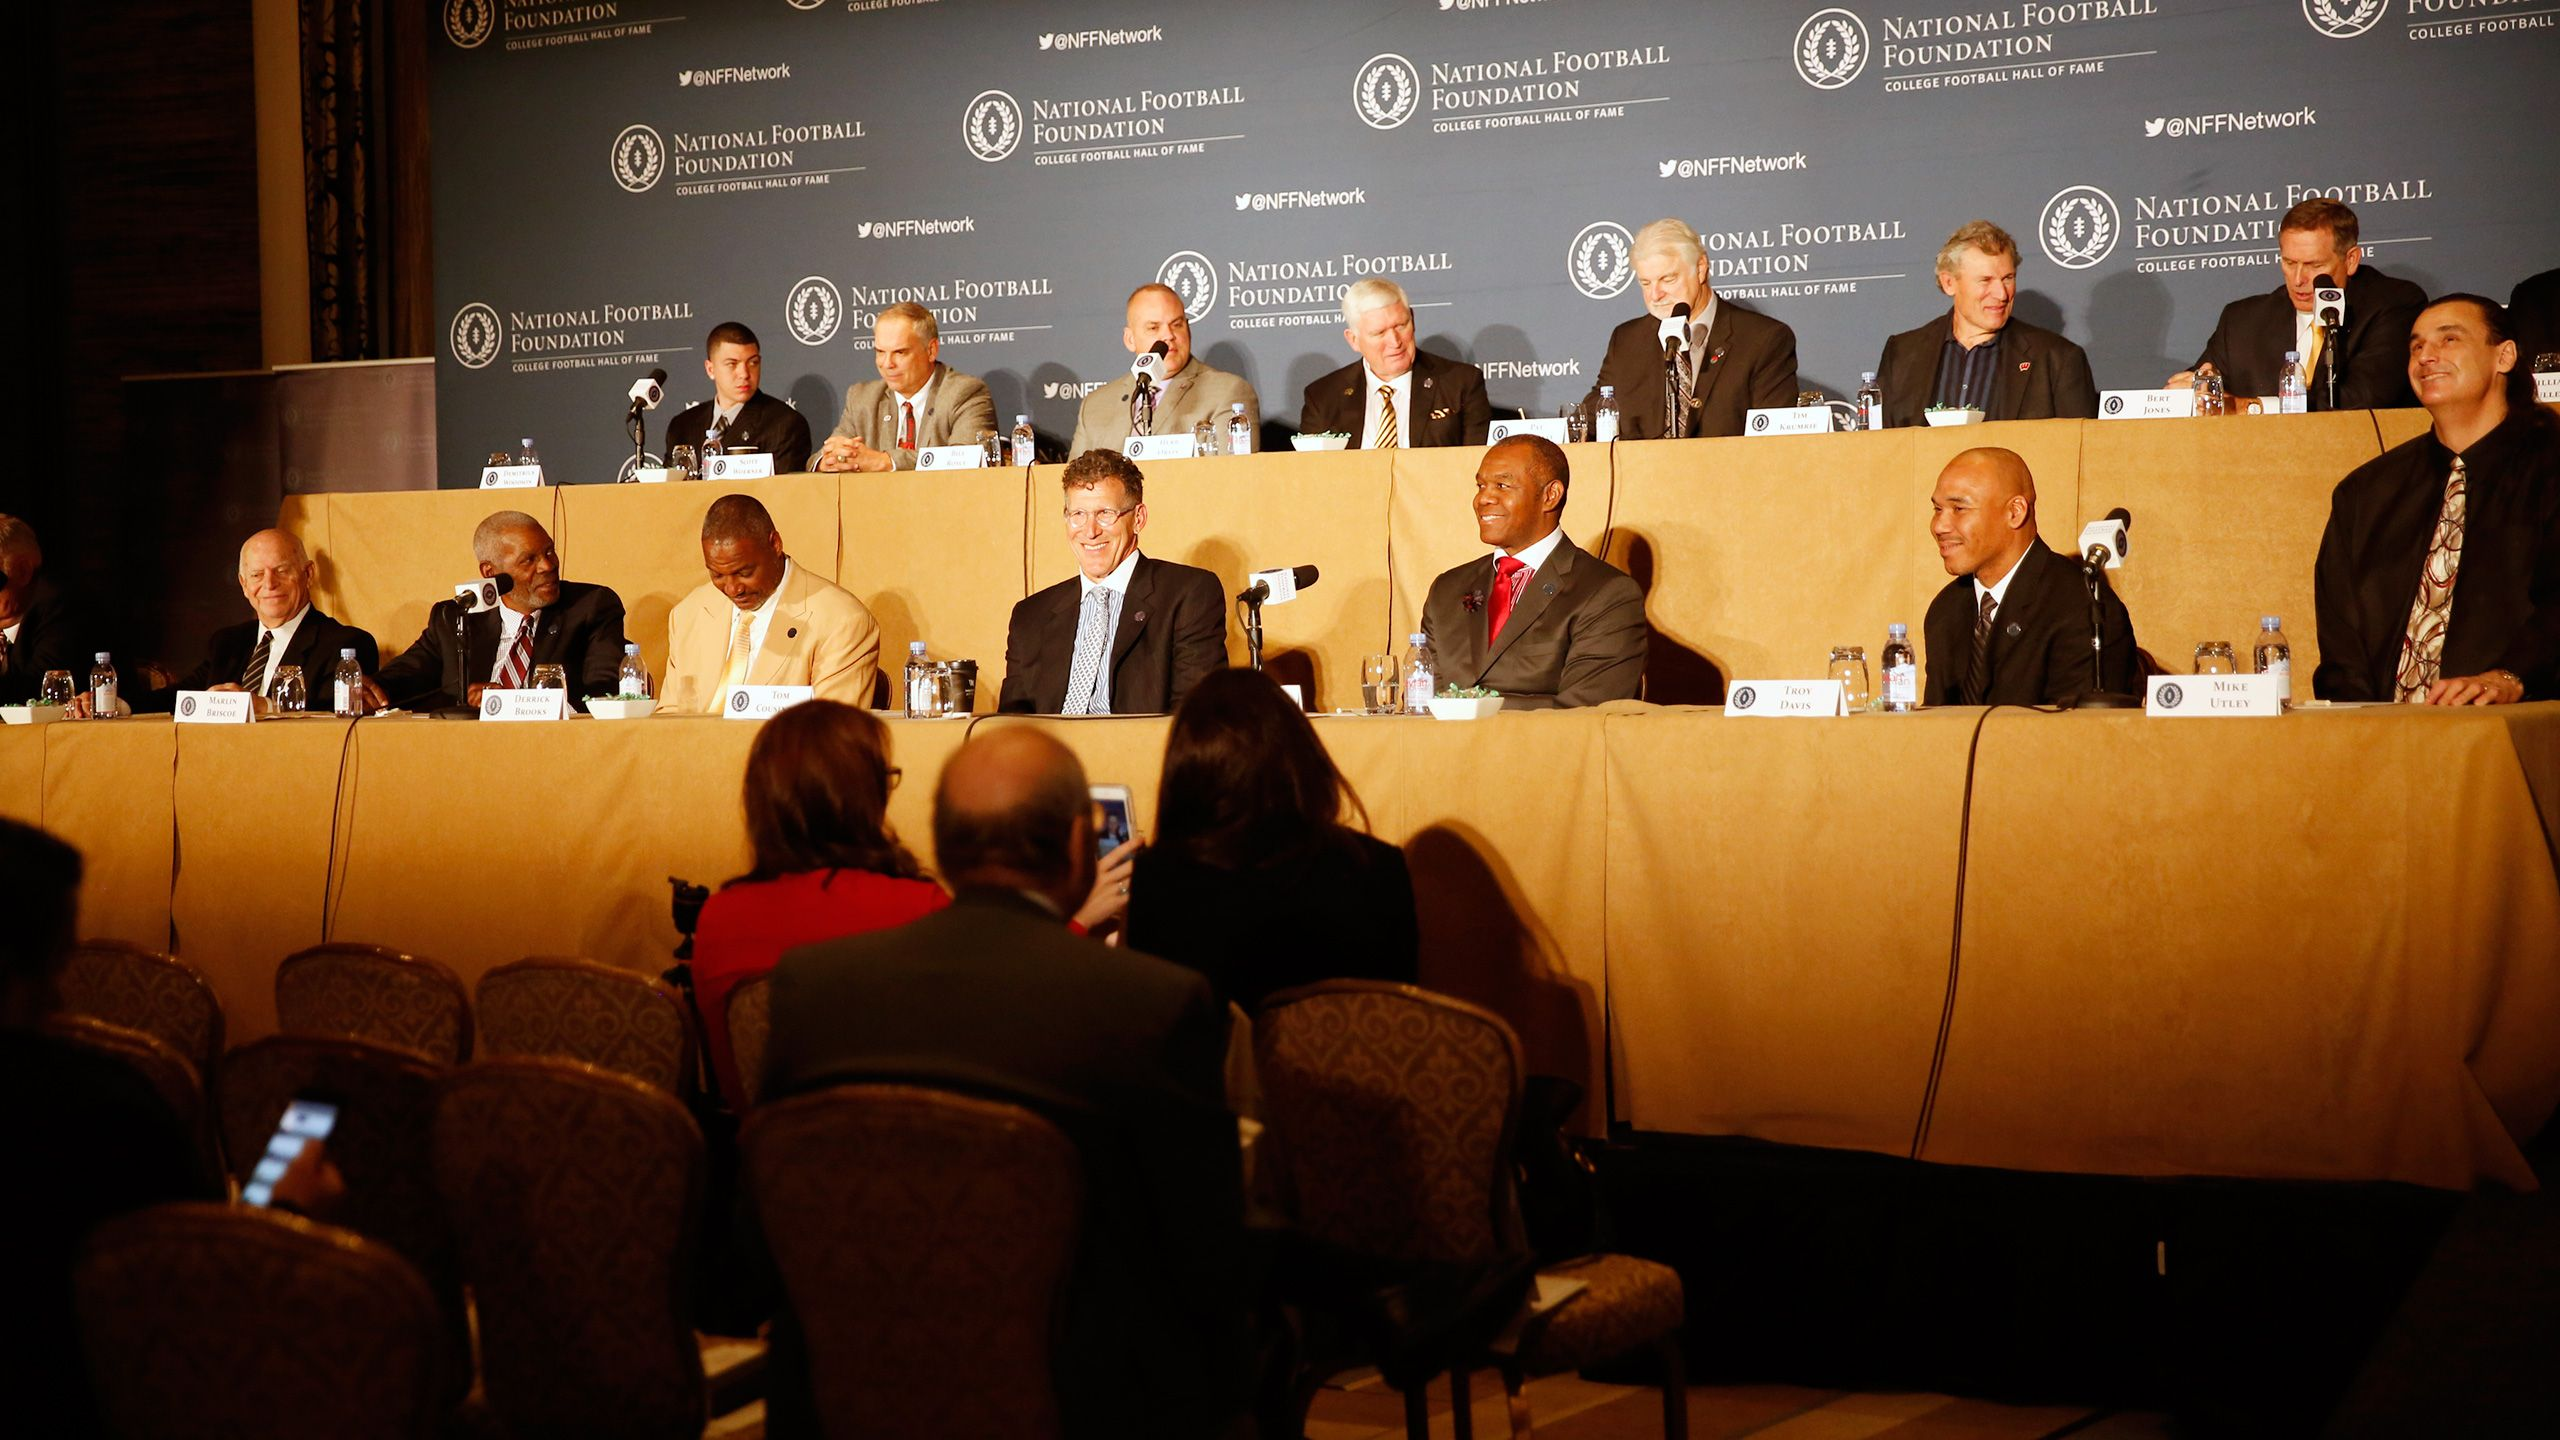 2017 National Football Foundation Awards Dinner Press Conference